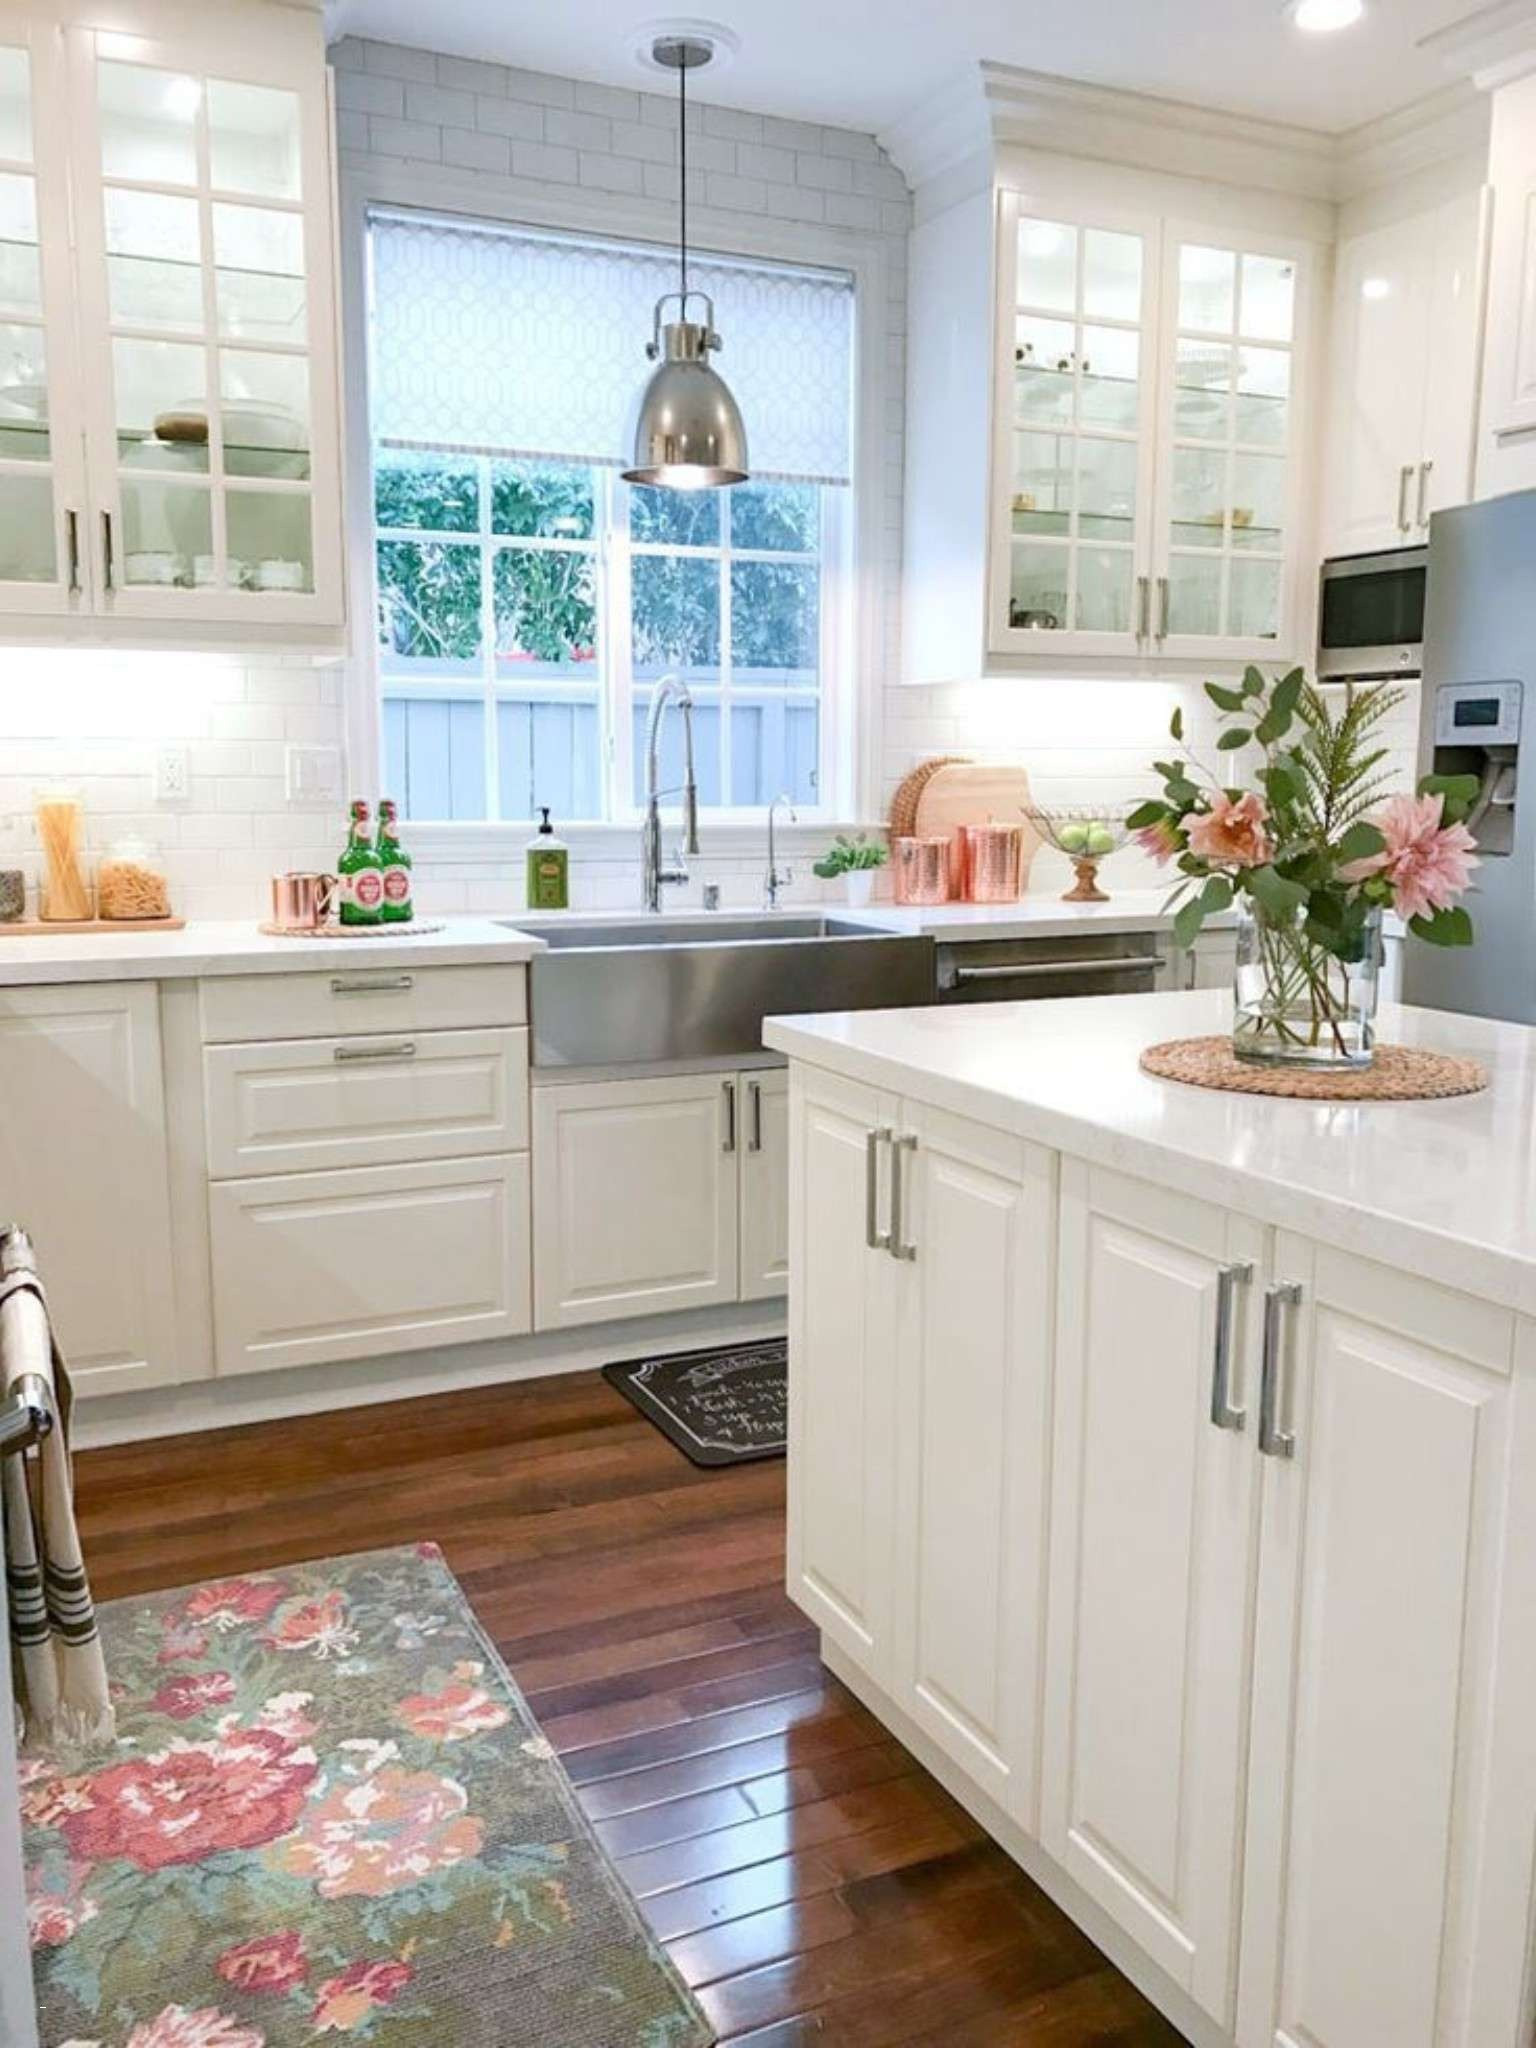 is hardwood flooring good for kitchens of bewitching pictures of hardwood floors in kitchens in floored with regard to bewitching pictures of hardwood floors in kitchens in floored kitchen decor items new kitchen zeev kitchen zeev kitchen 0d